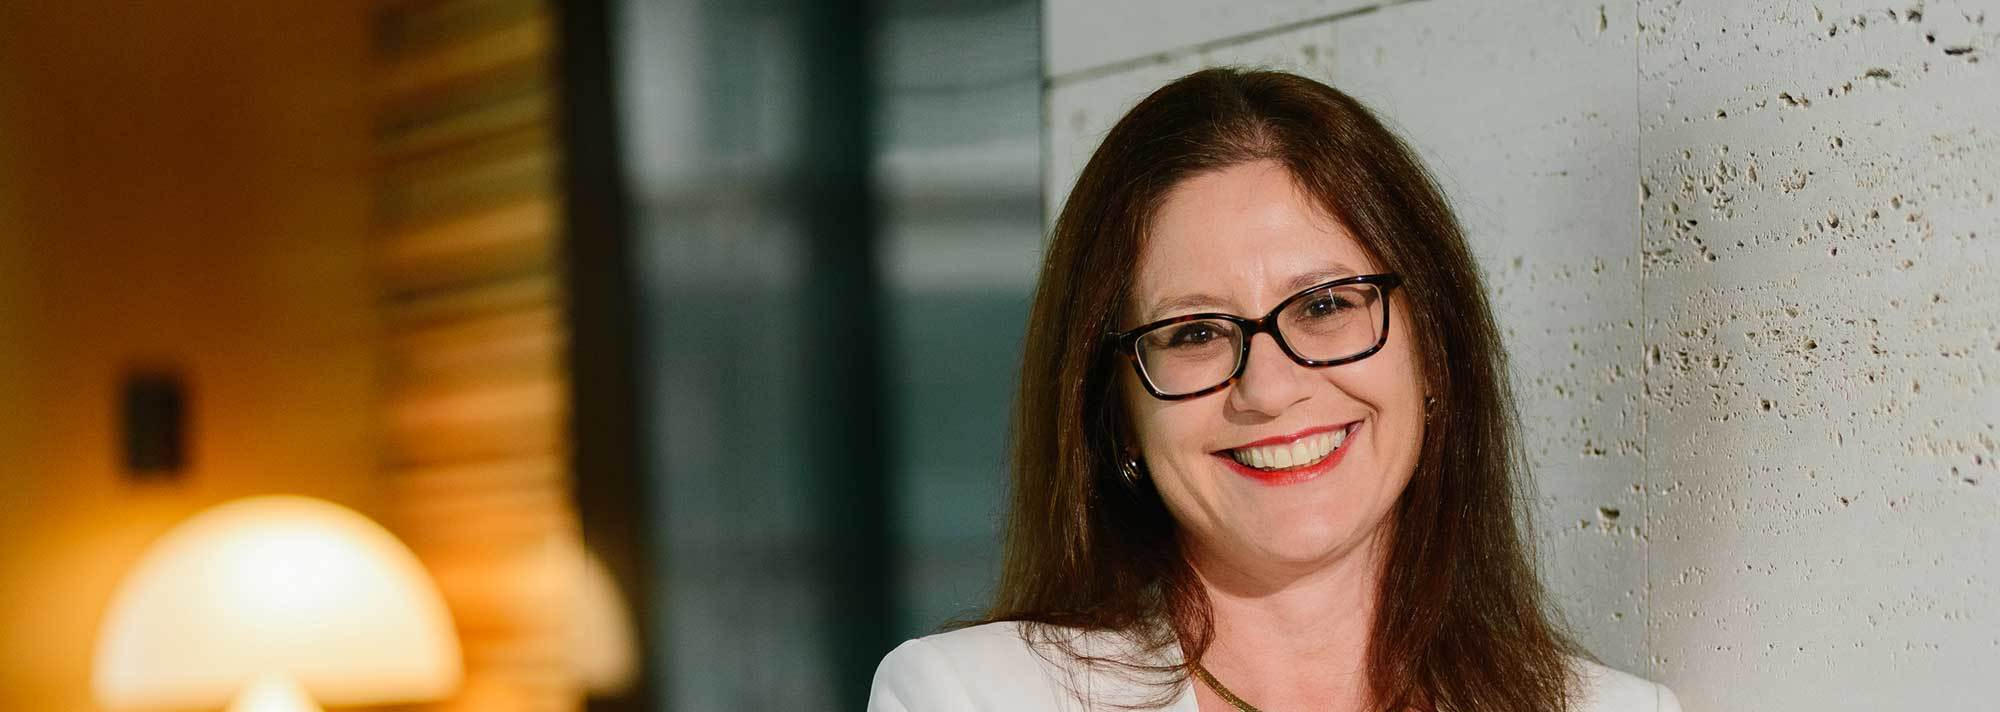 Profile picture of financial planner Anne Graham